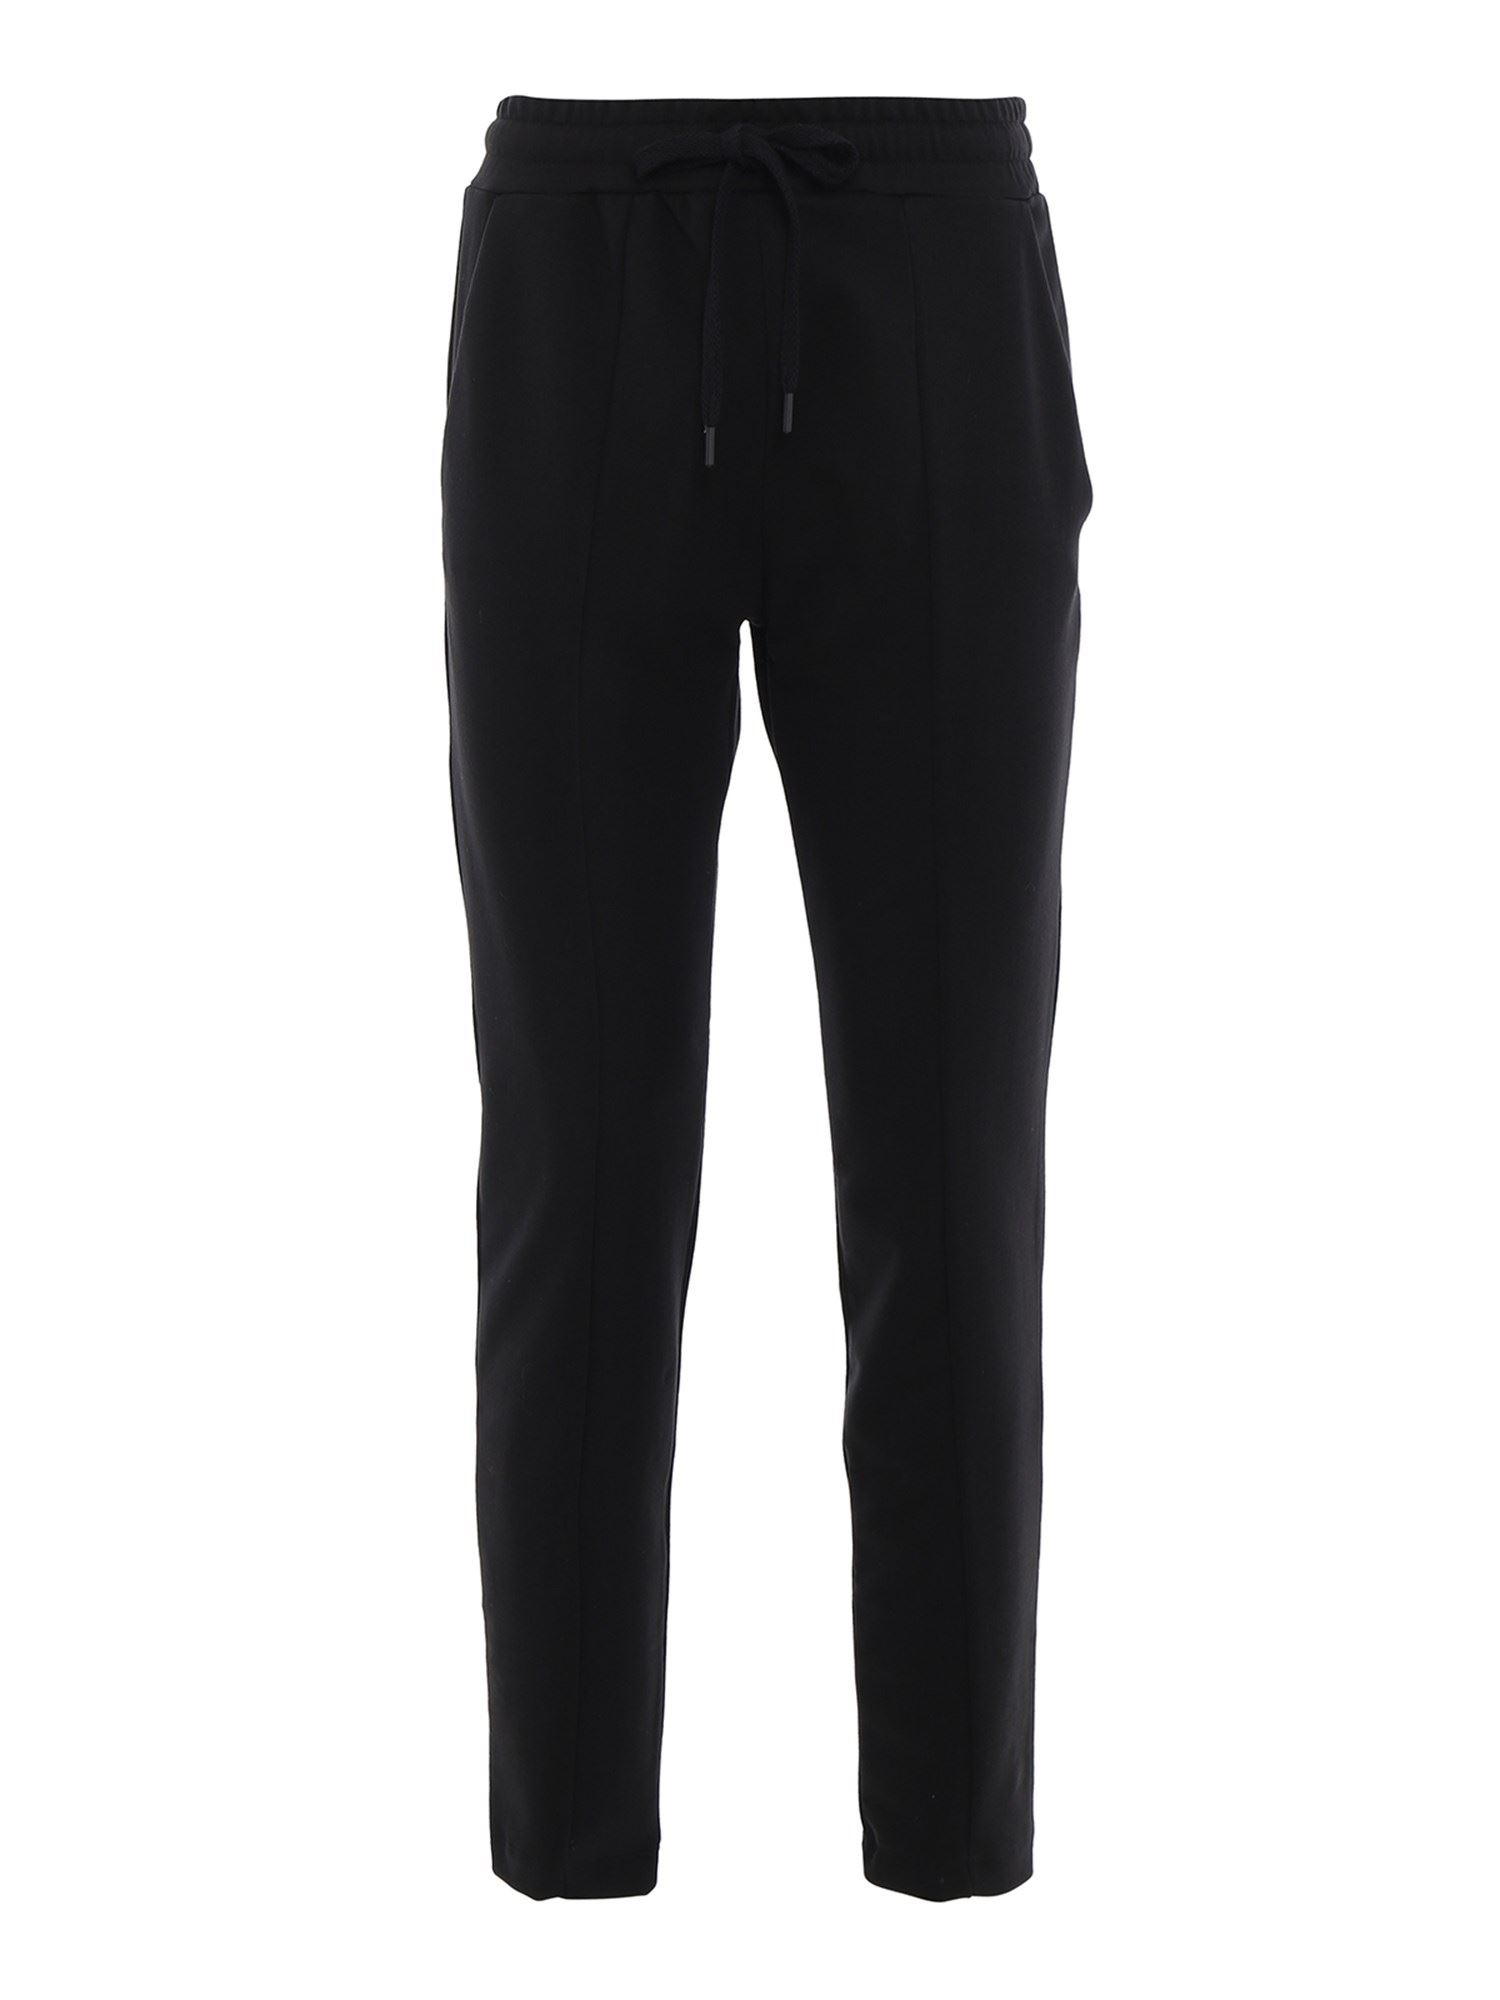 Moschino LOGO PRINT COTTON TRACKSUIT BOTTOMS IN BLACK